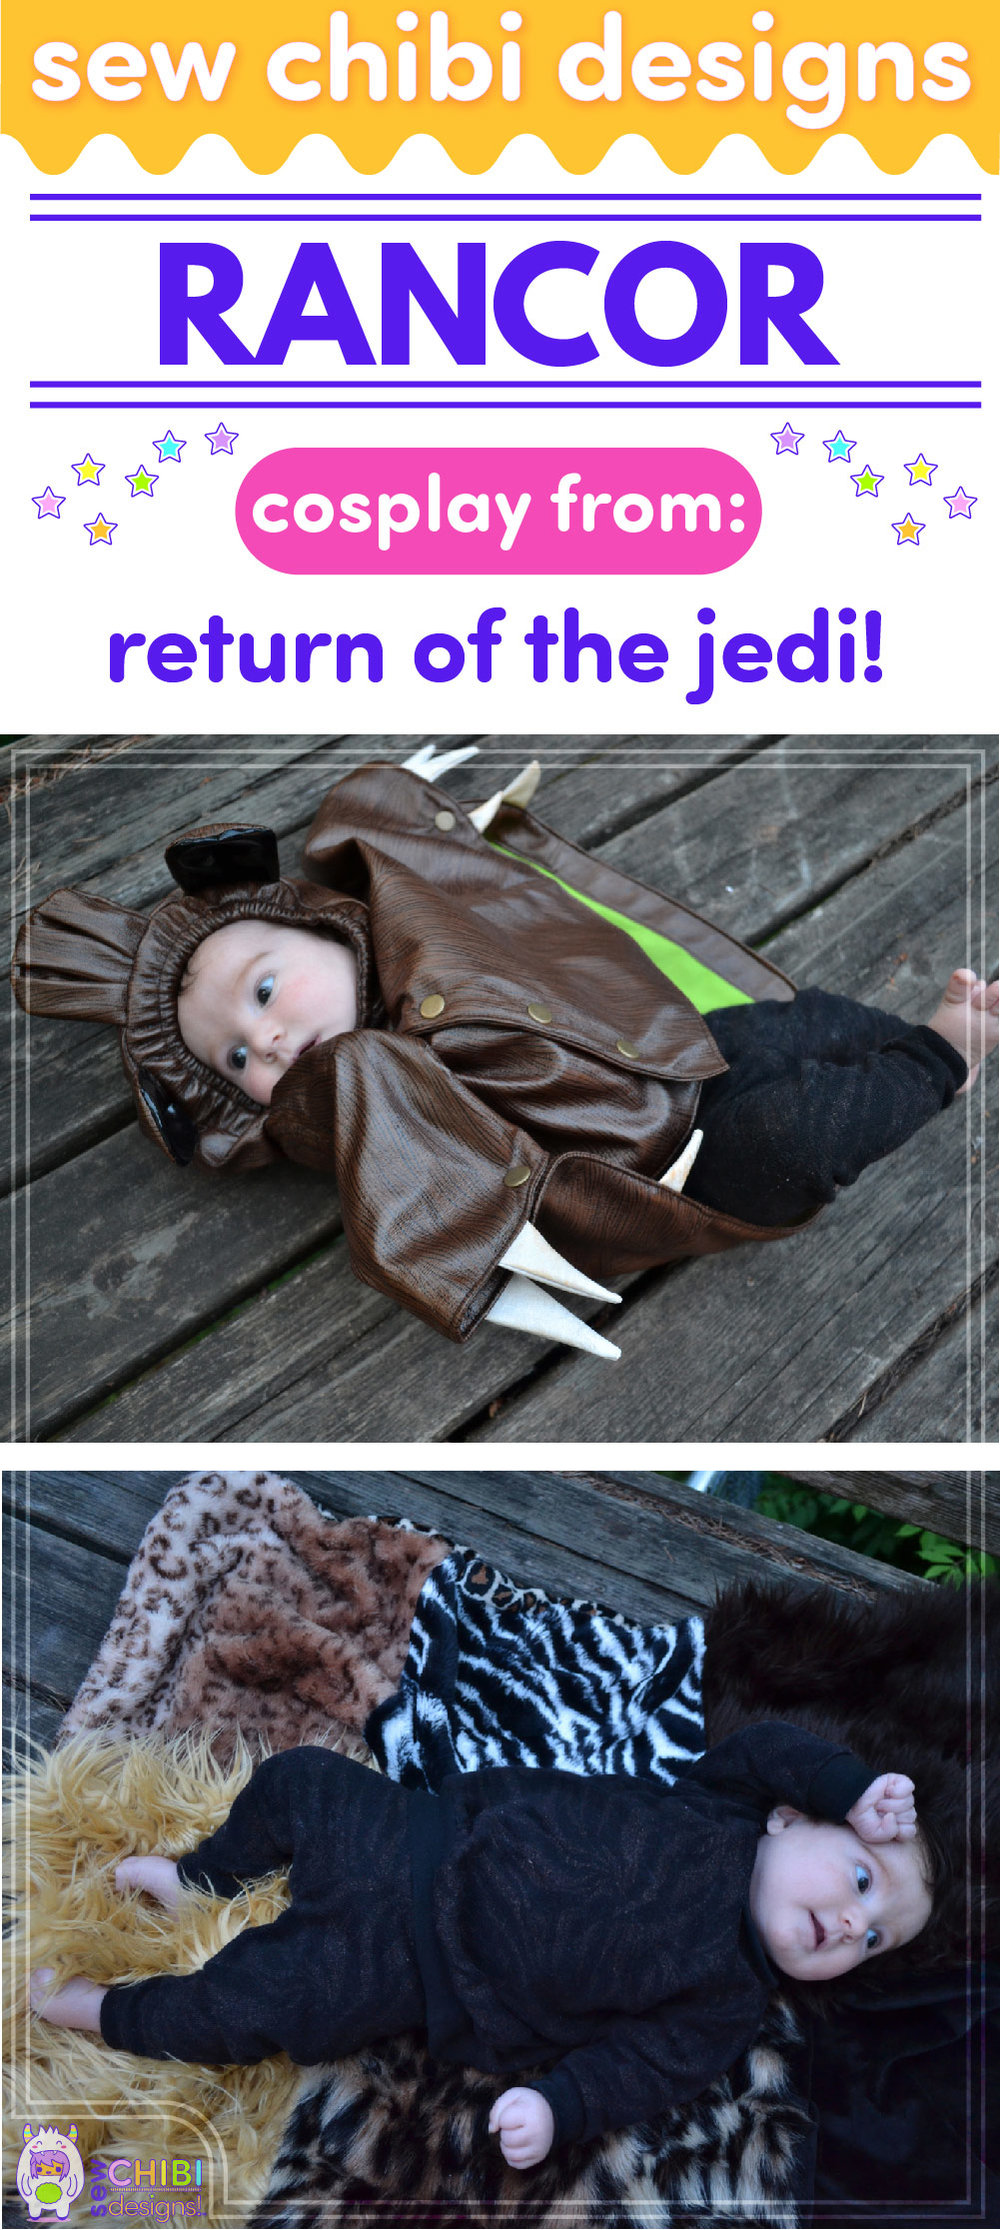 Rancor chibi cosplay from Star Wars sewn by Sew Chibi Designs for Sew Geeky